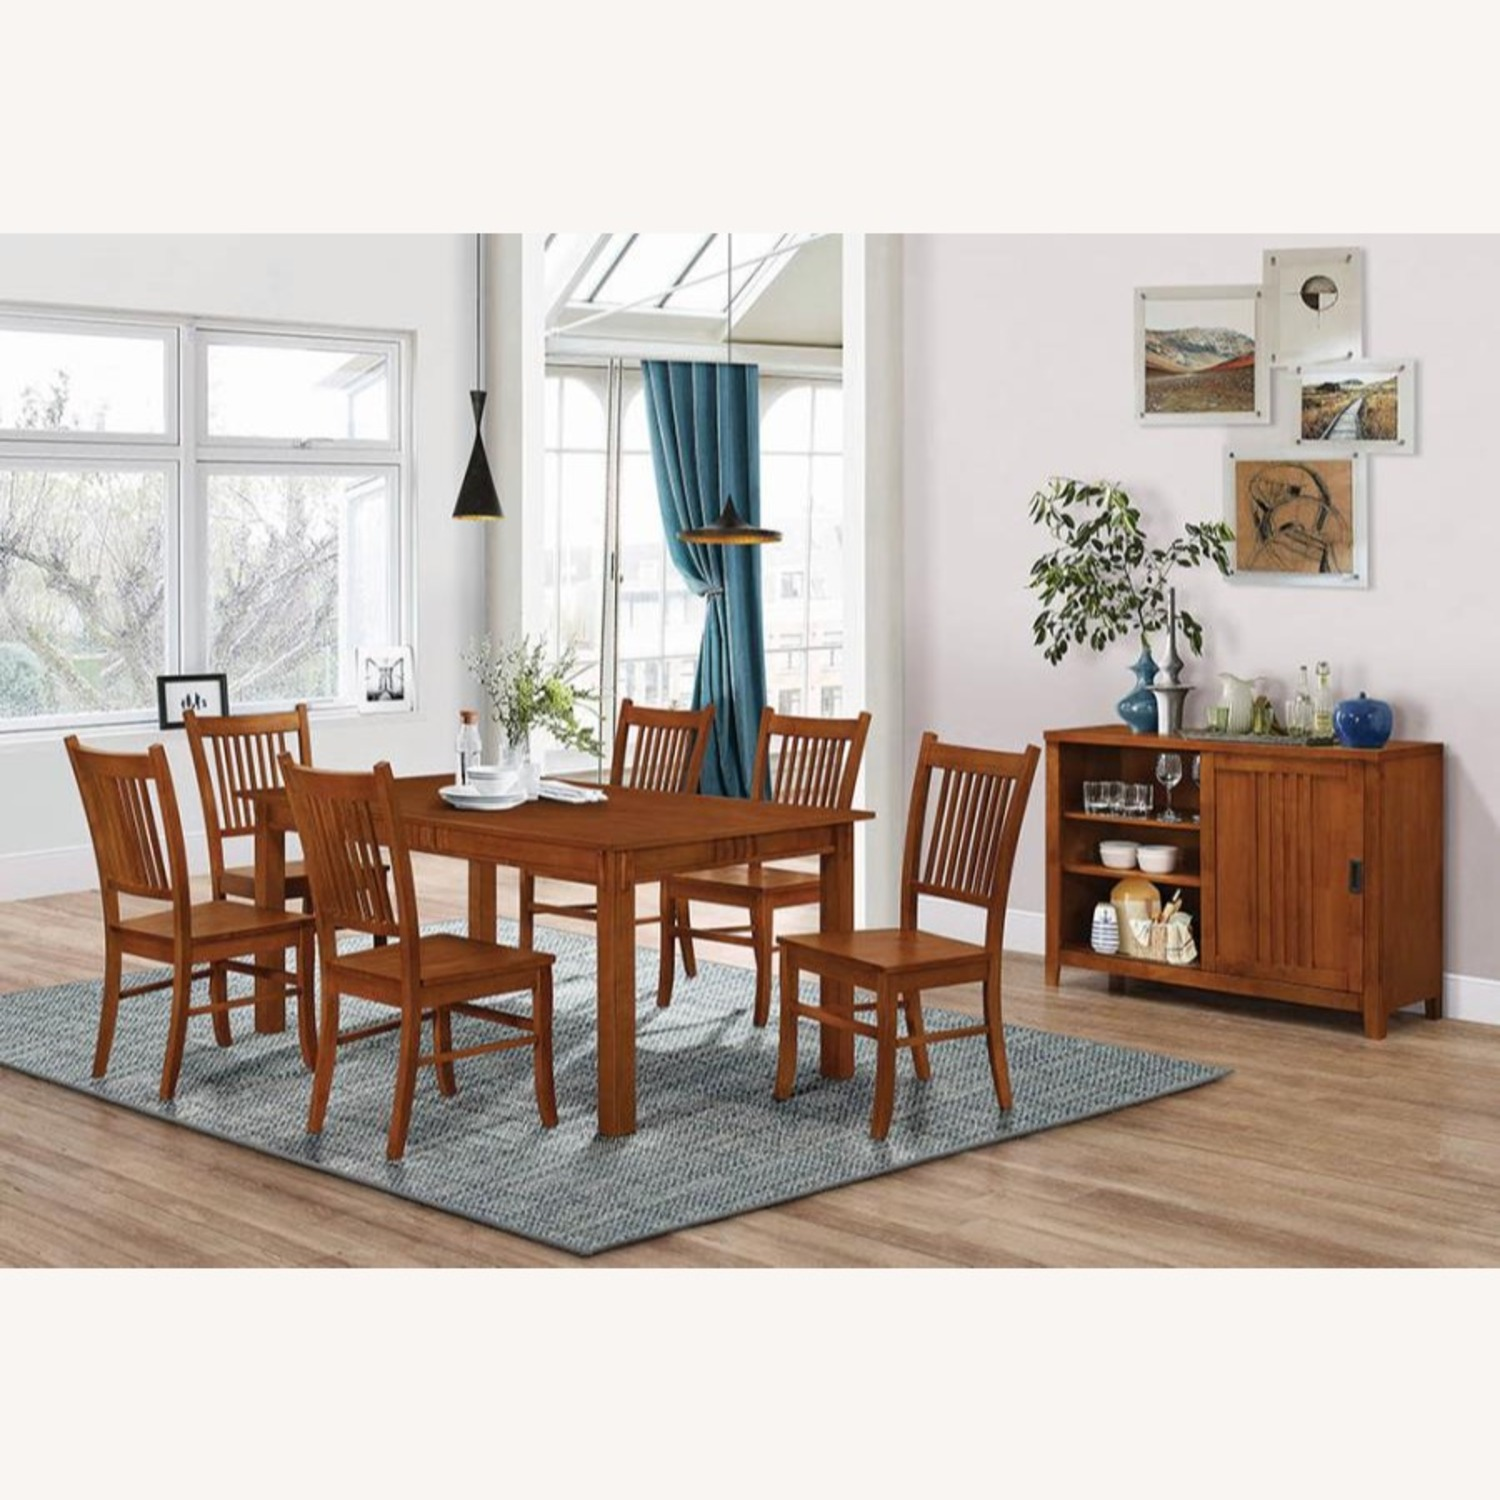 Dining Table In Hardwood Sienna Brown Finish - image-4